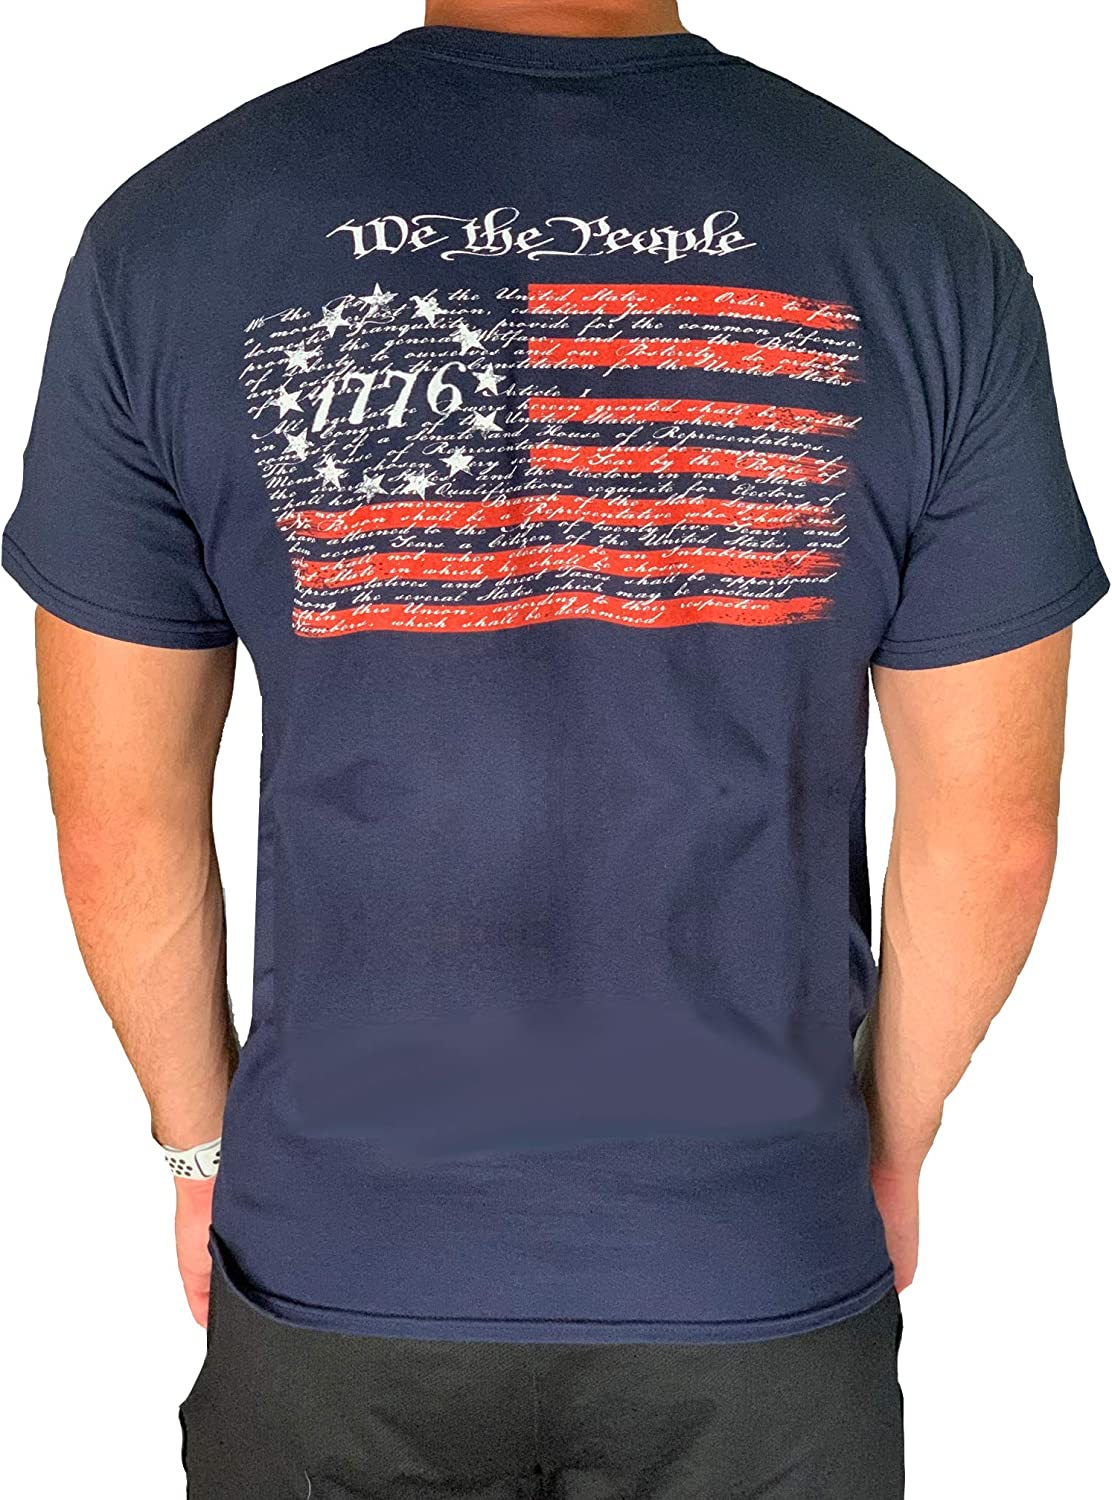 We The People Navy Youth T-Shirt